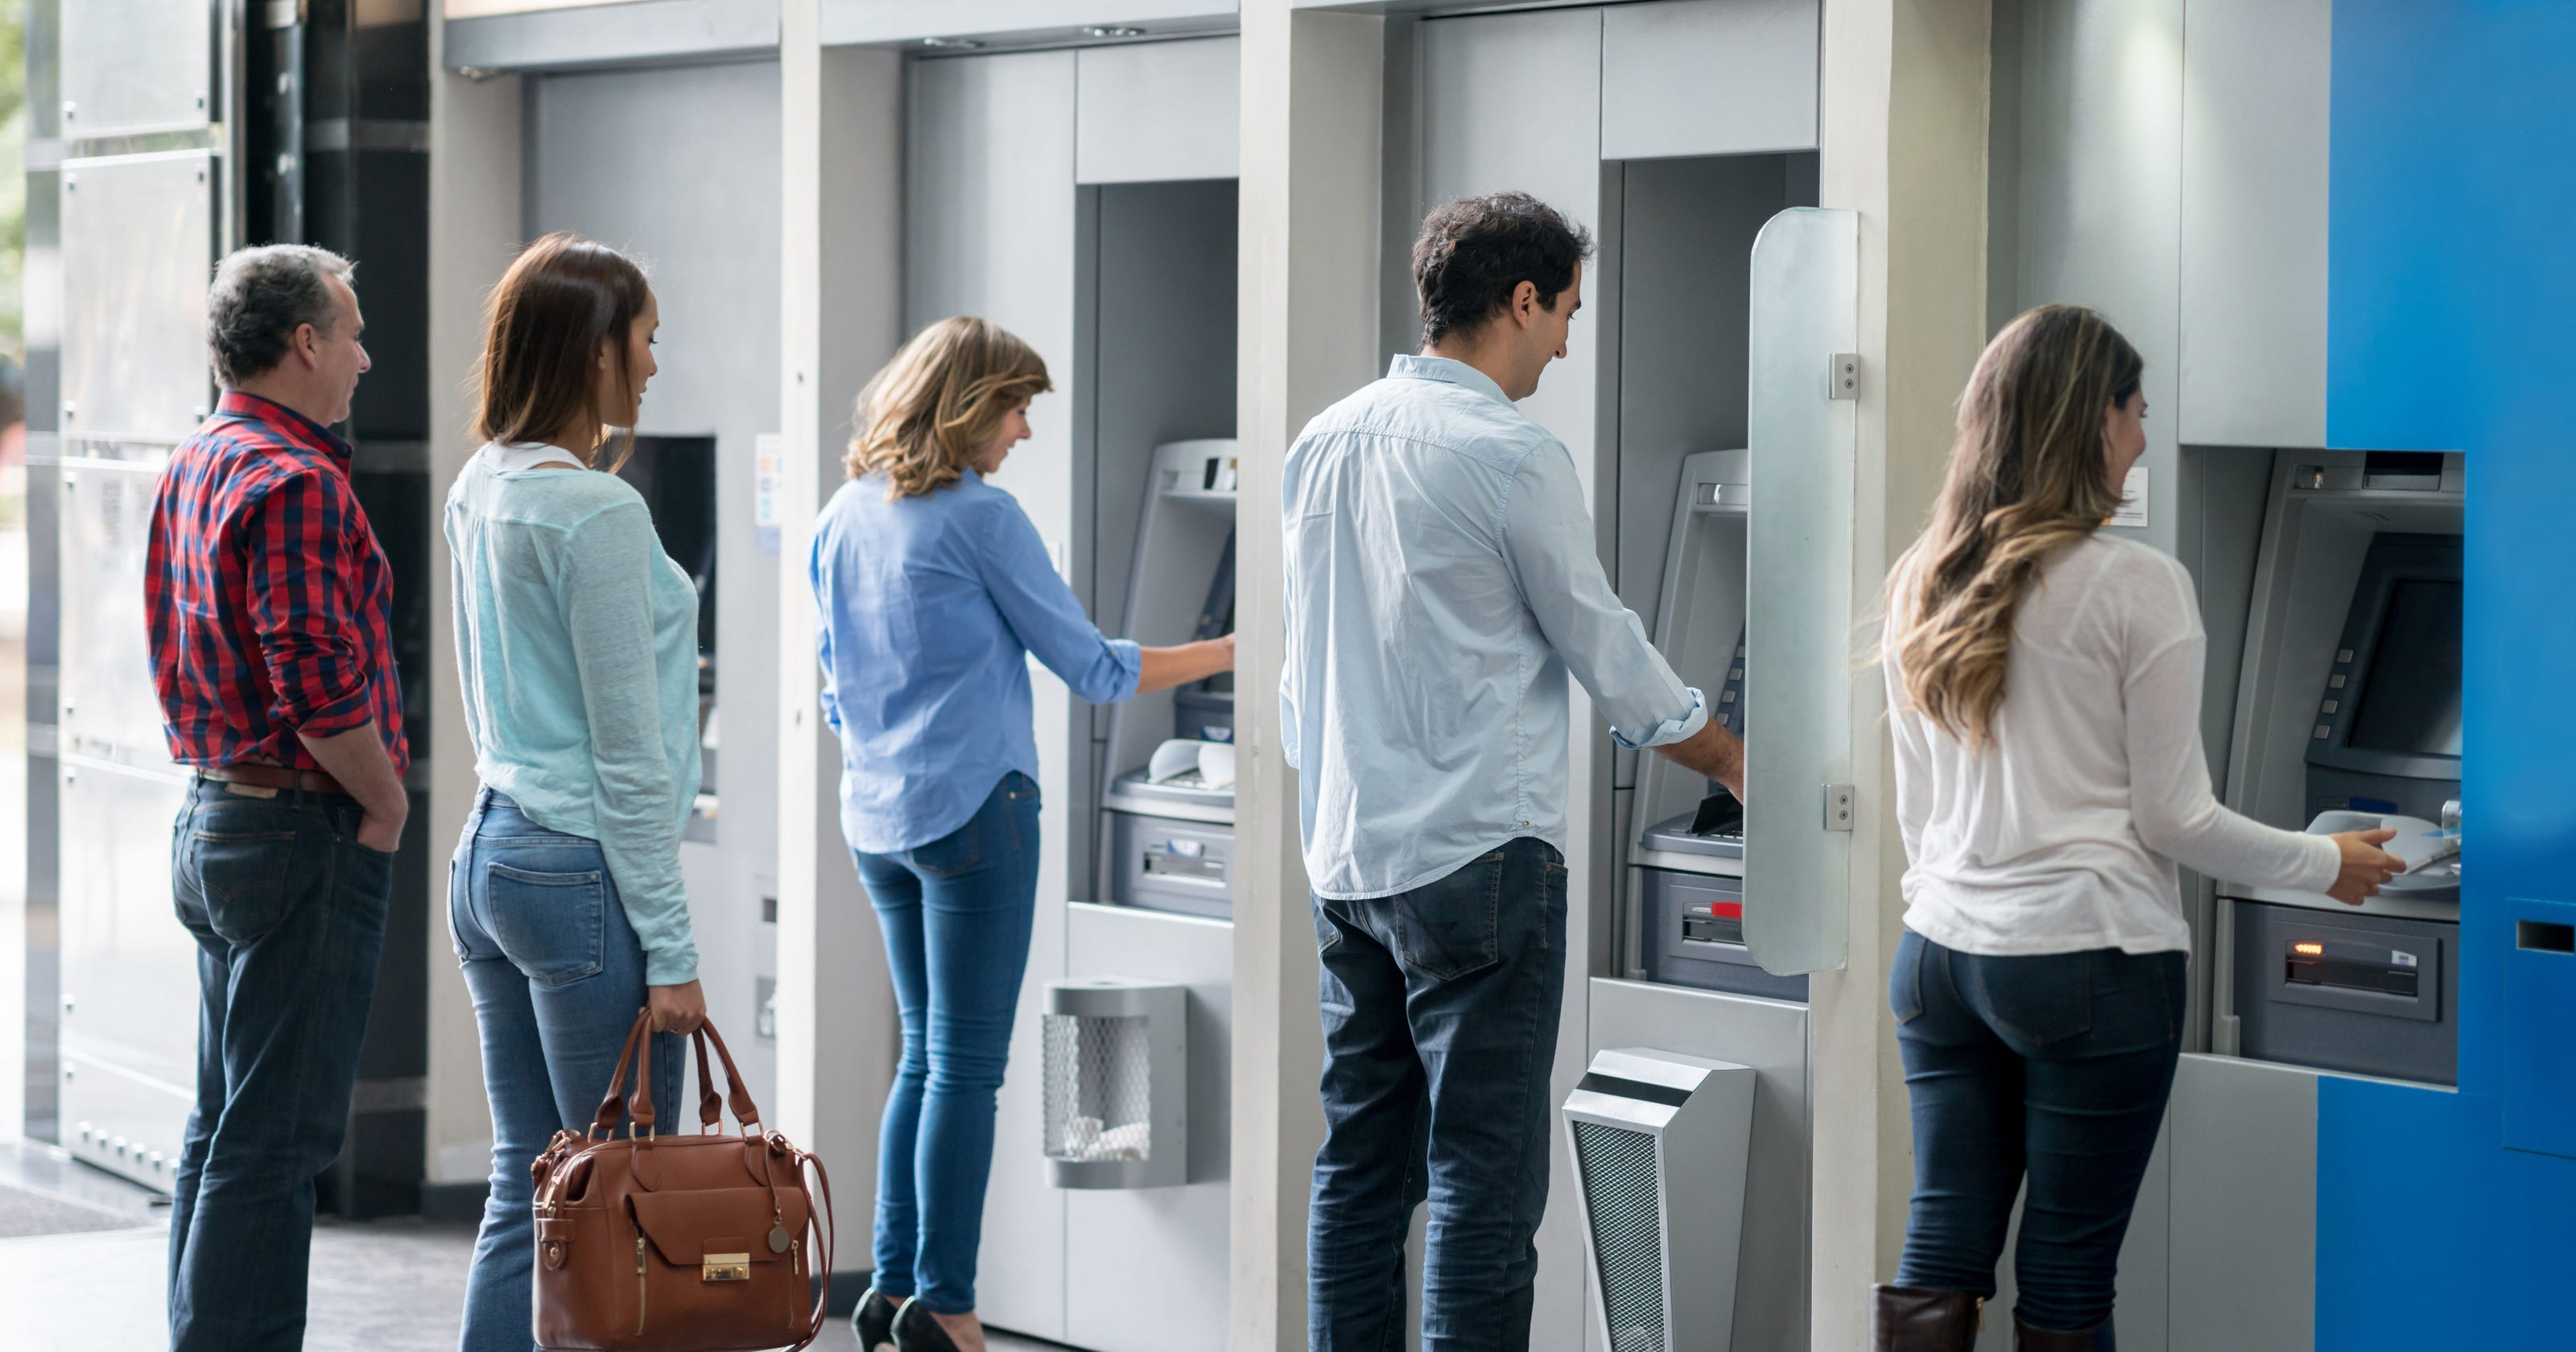 10 banks consumers complain about the most